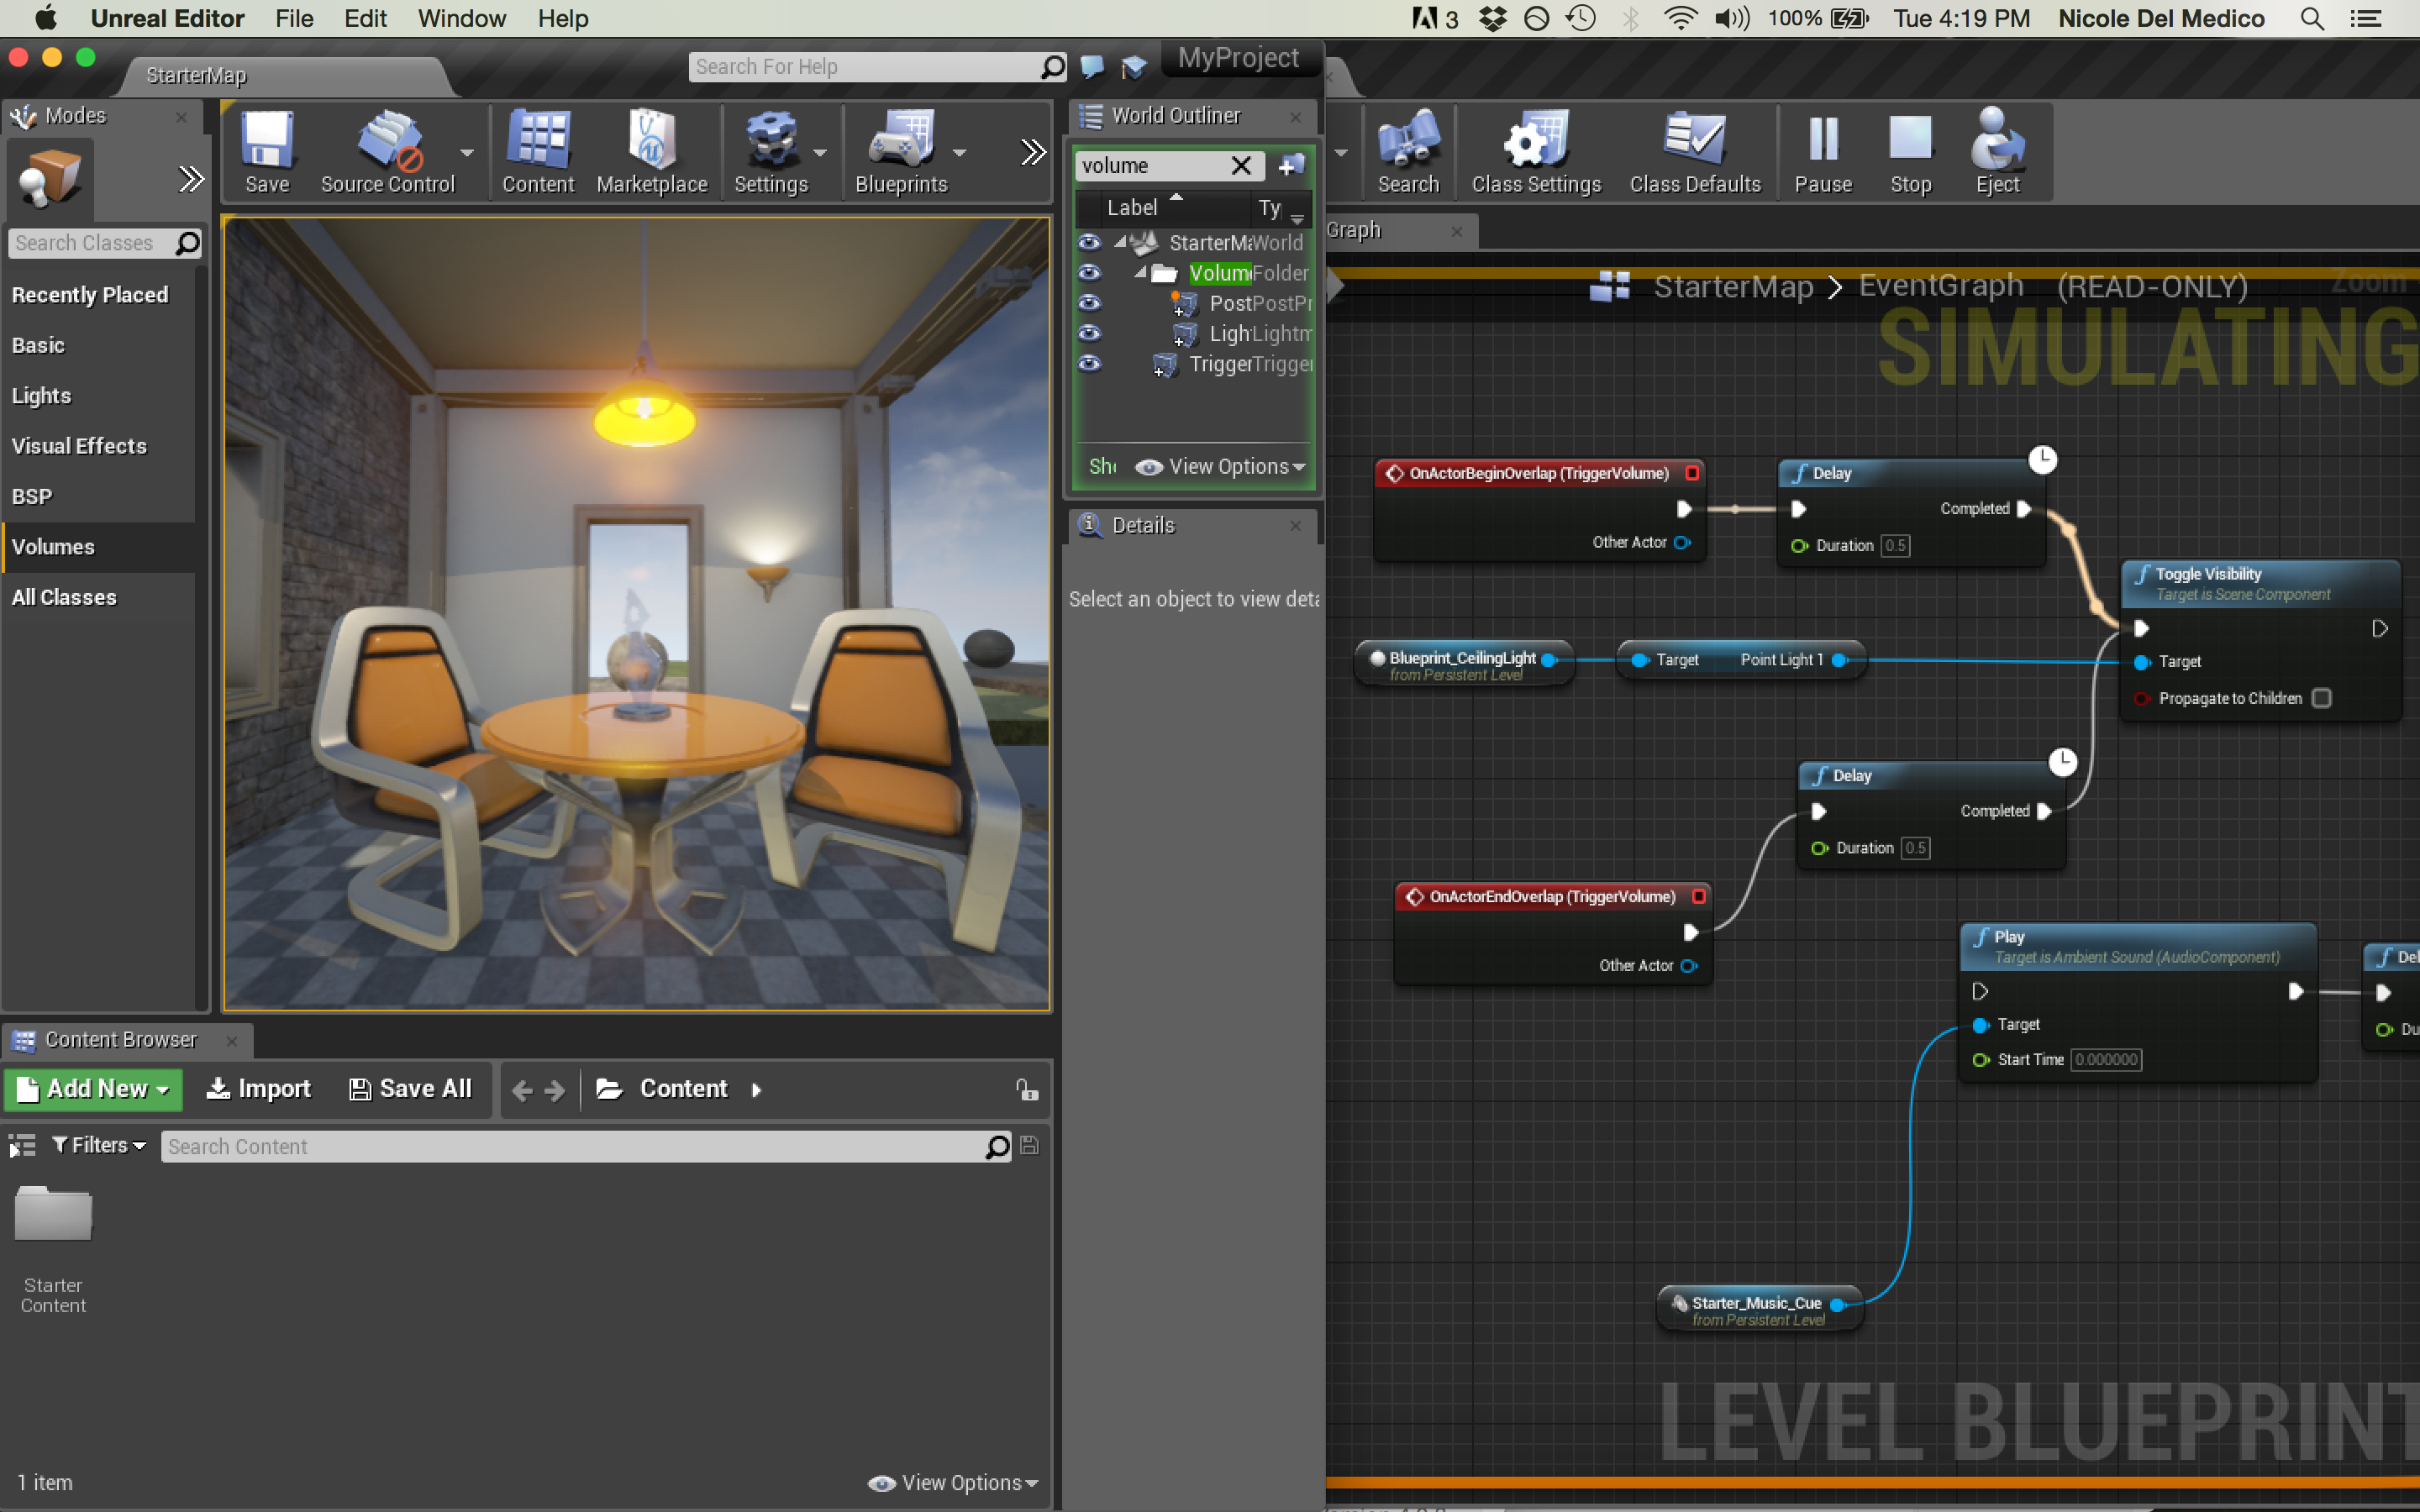 Ue4 blueprint tutorials level blueprints nicole del medicos screen shot 2015 10 06 at 41909 pm malvernweather Gallery